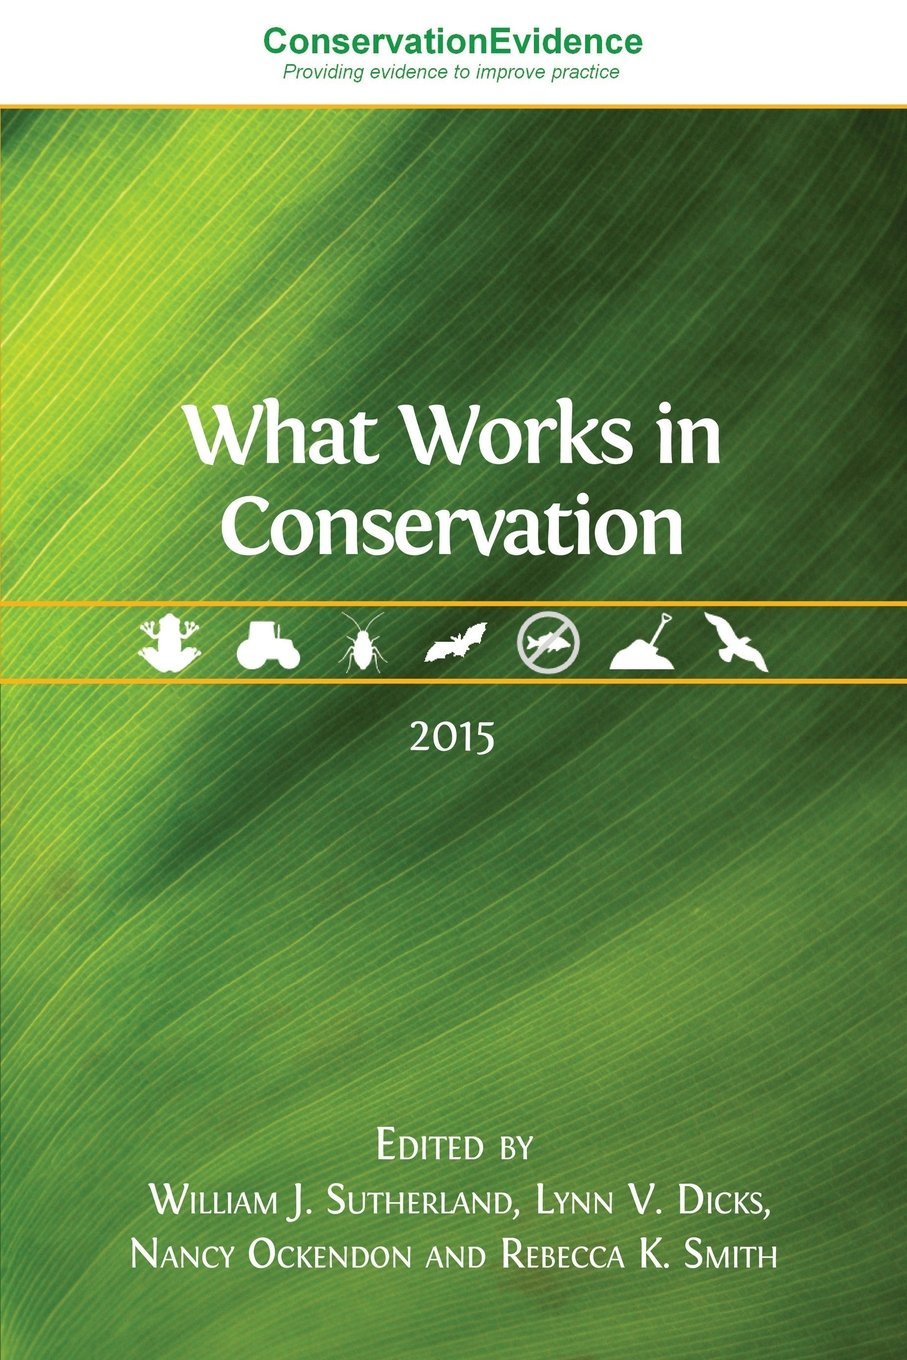 What Works in Conservation: 2015 PDF